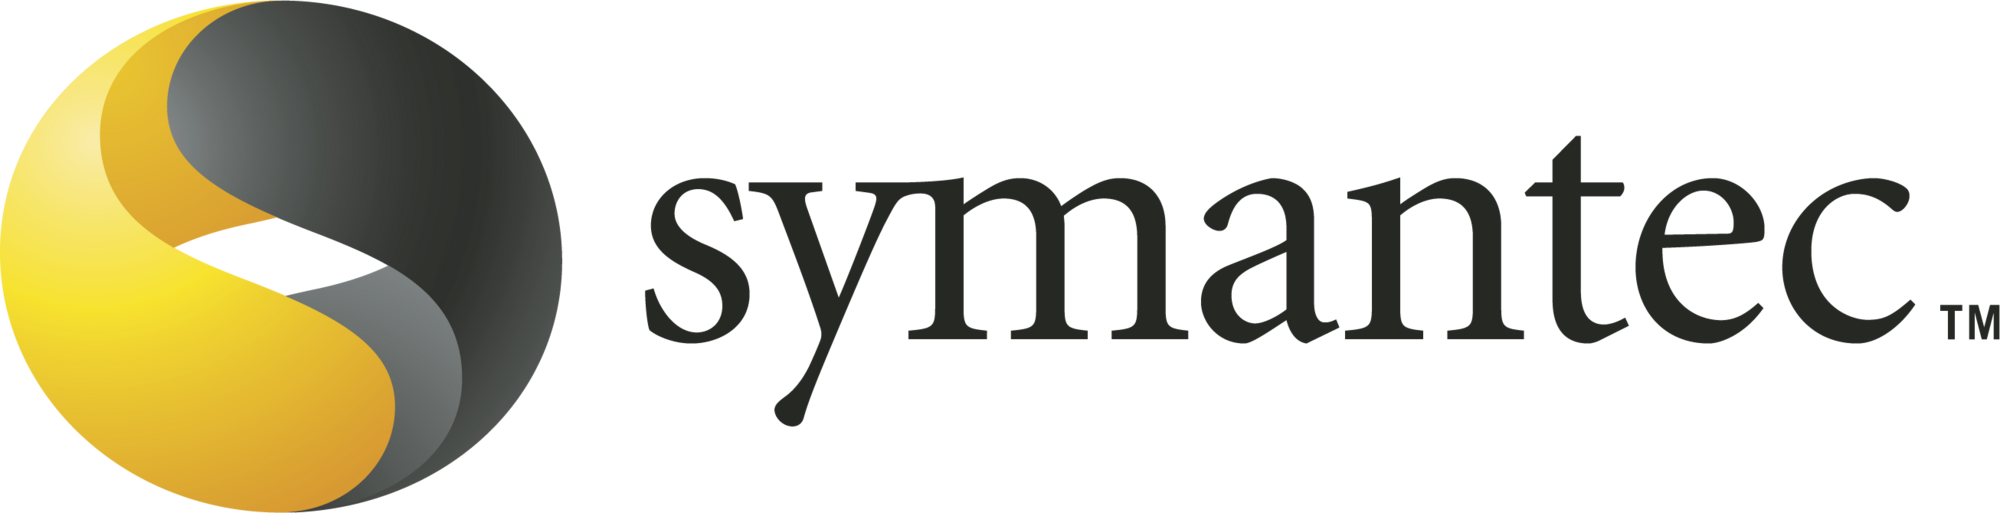 symantec logopedia fandom powered by wikia